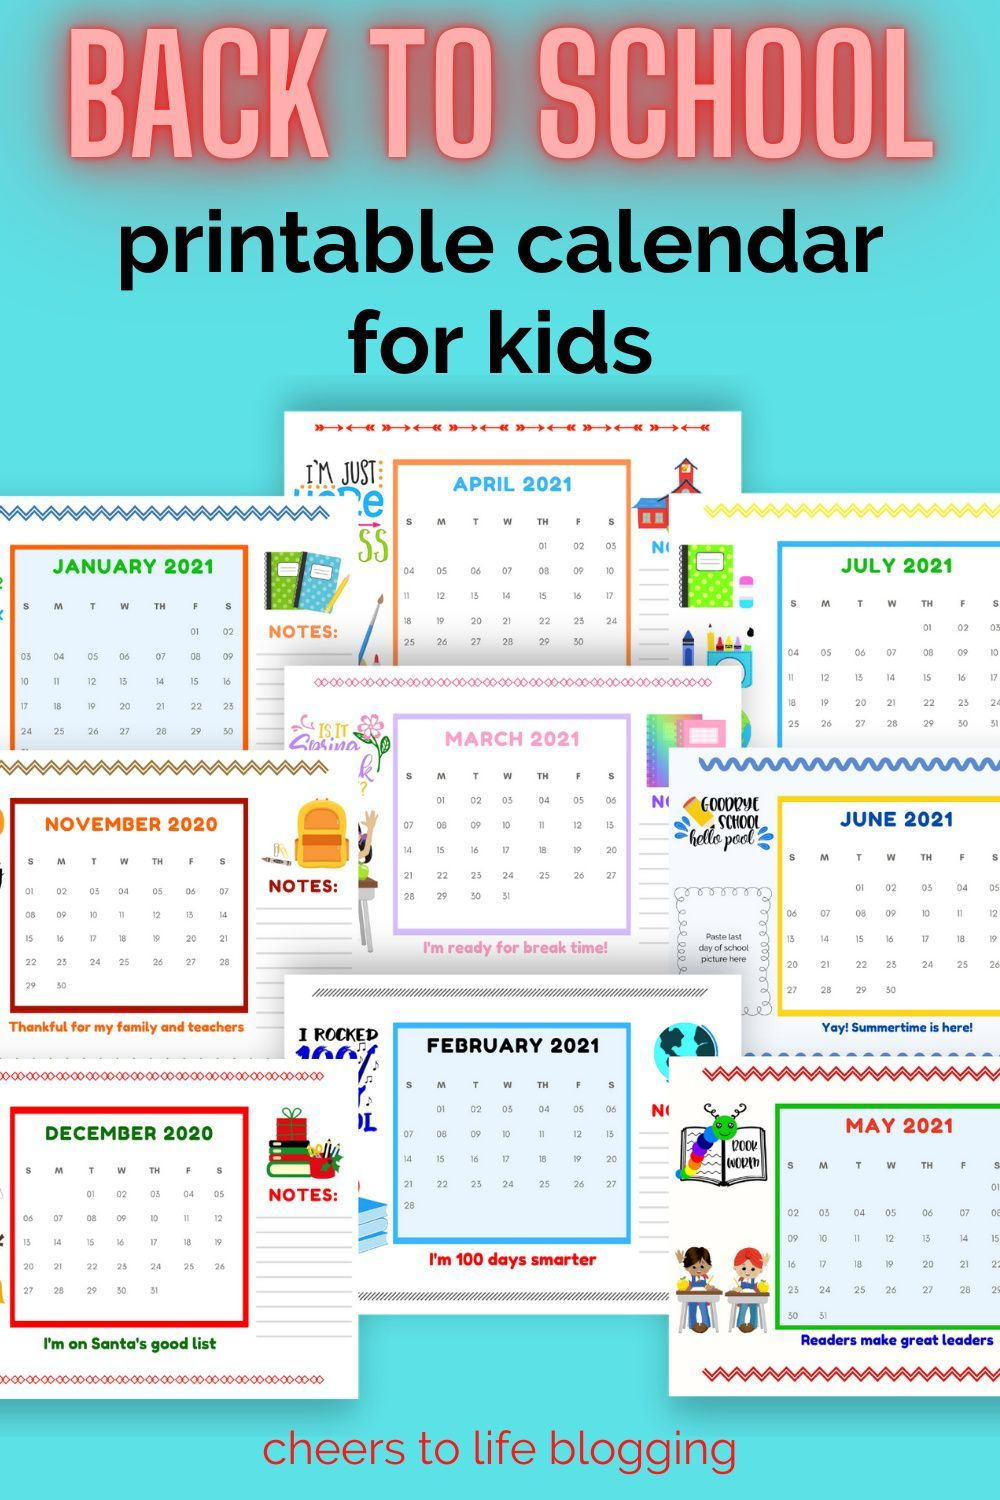 Back to School Printable Calendar for Kids (Made by a Kid